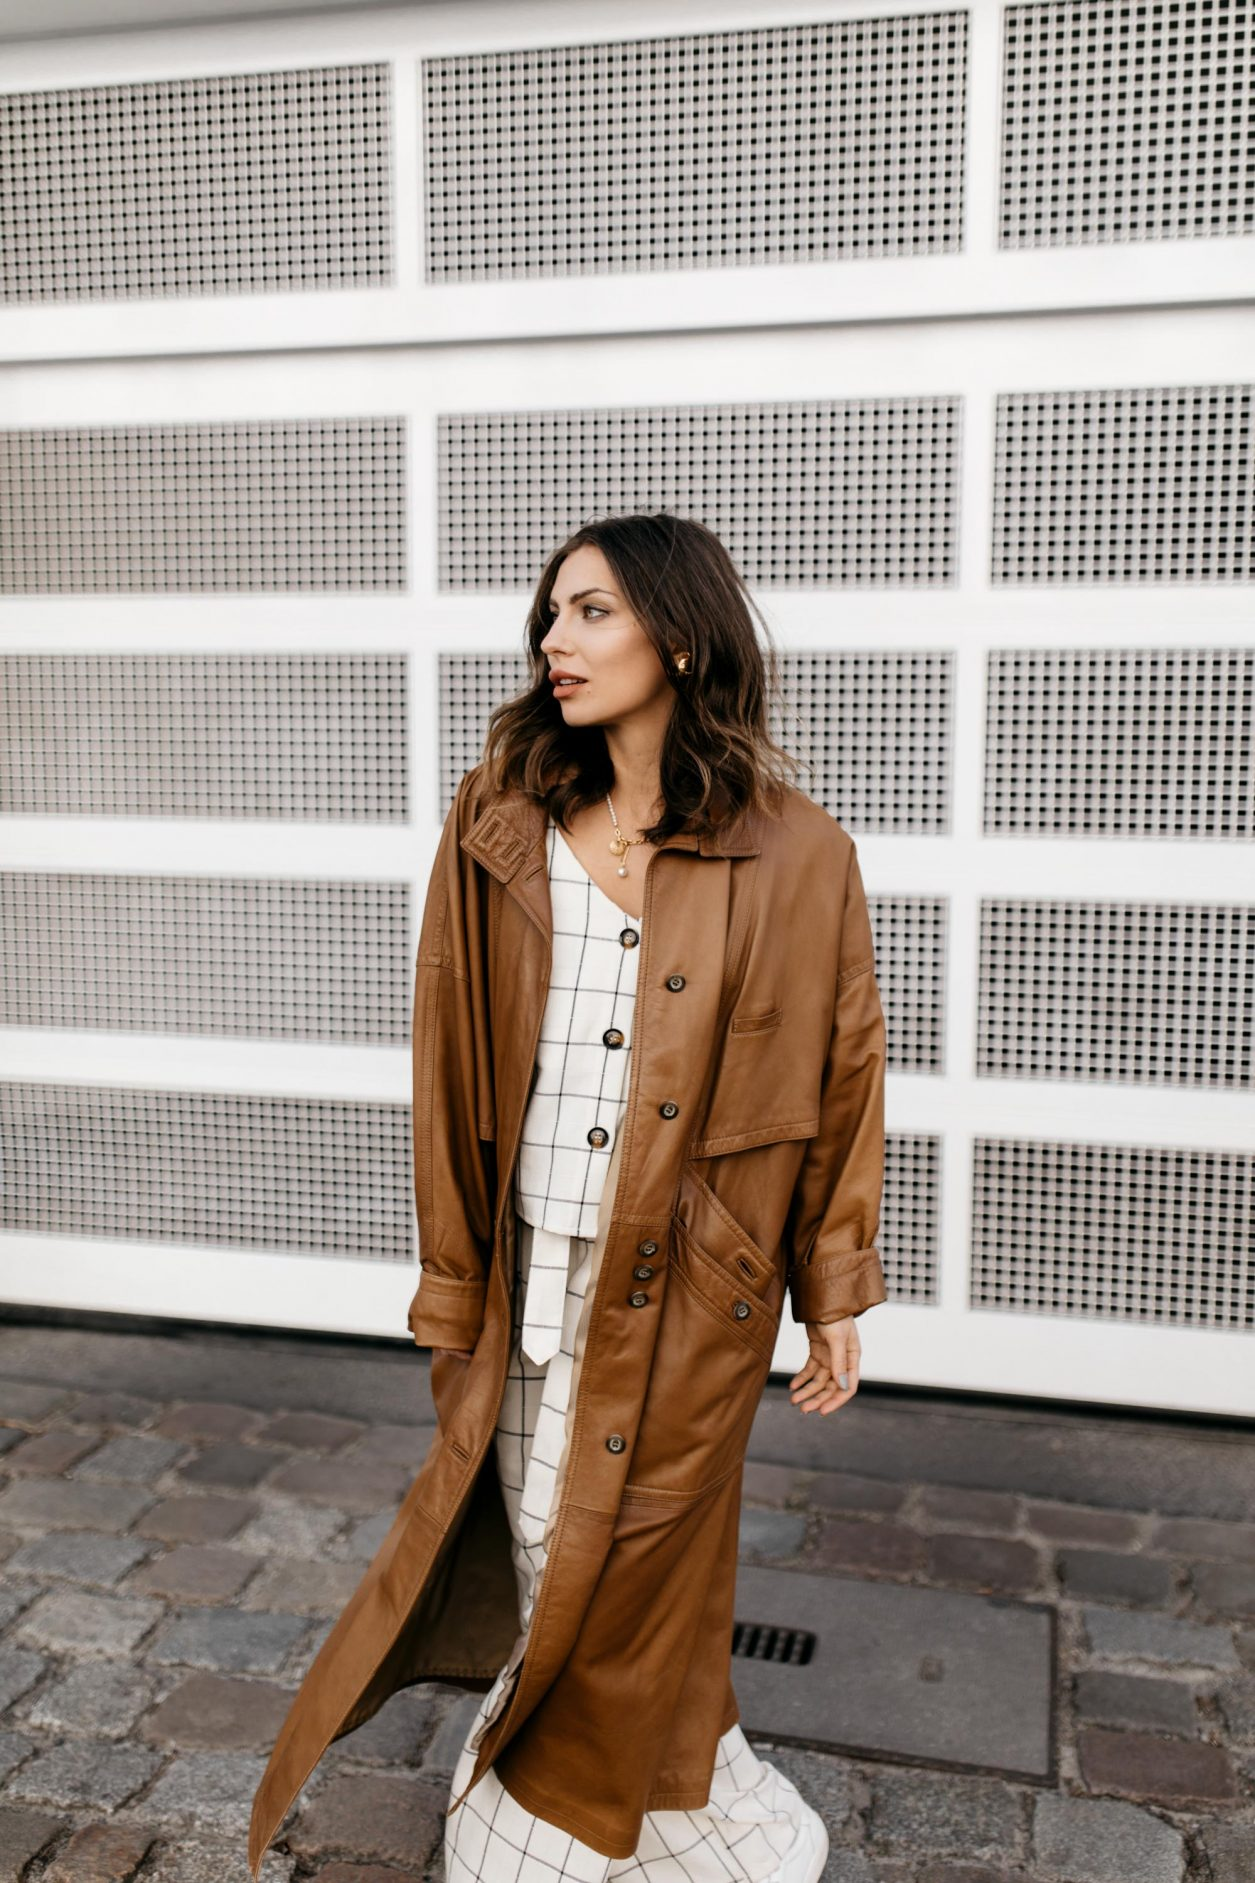 Anzeige | Streetstyle Outfit by Masha Sedgwick | Fashion blogger from Berlin, Germany | Spring summer outfit inspiration, two-pieces checked look in white linen from Gestuz, vintage brown leather coat